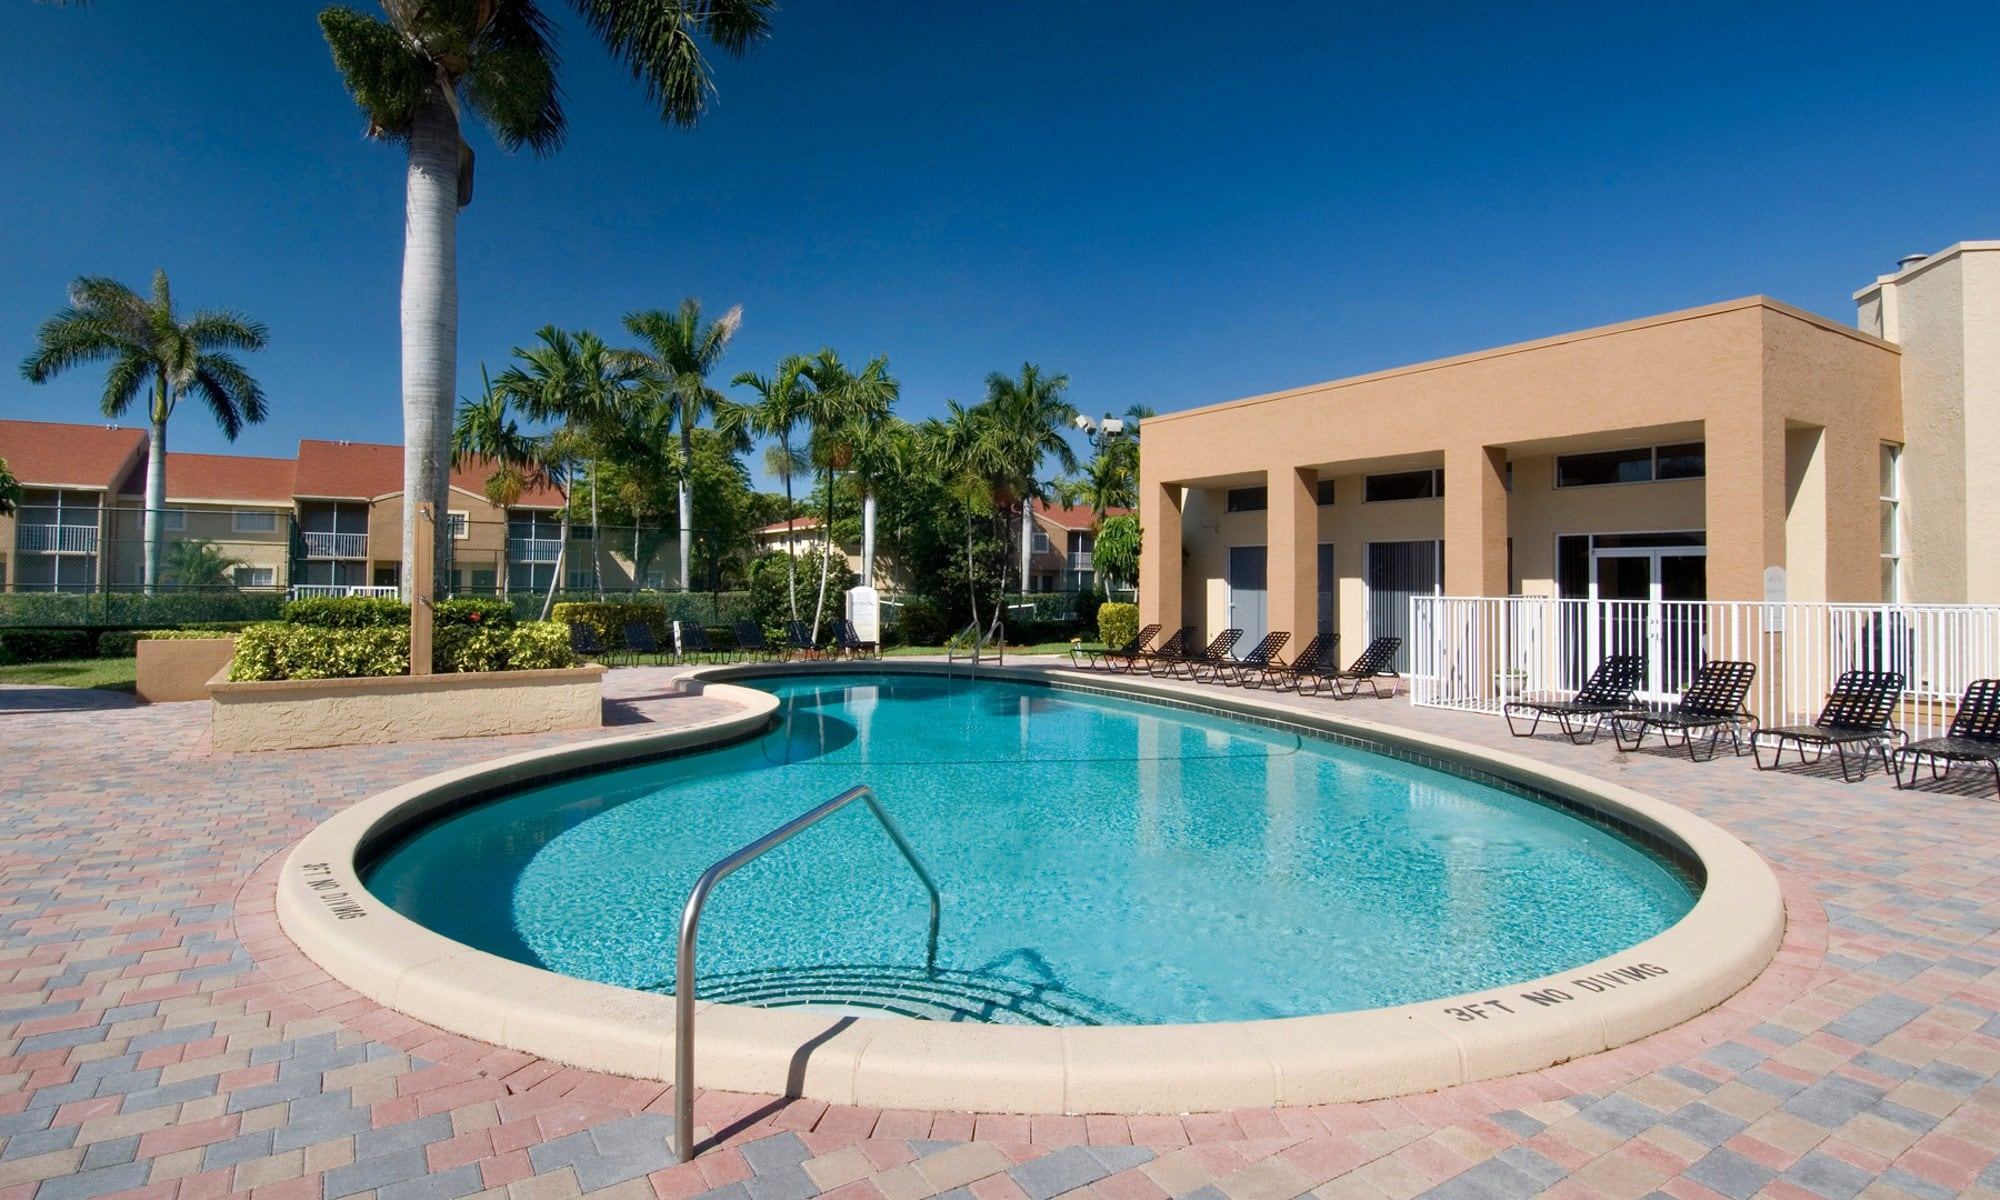 West Palm Beach Fl Apartments For Rent Azalea Village Apartments